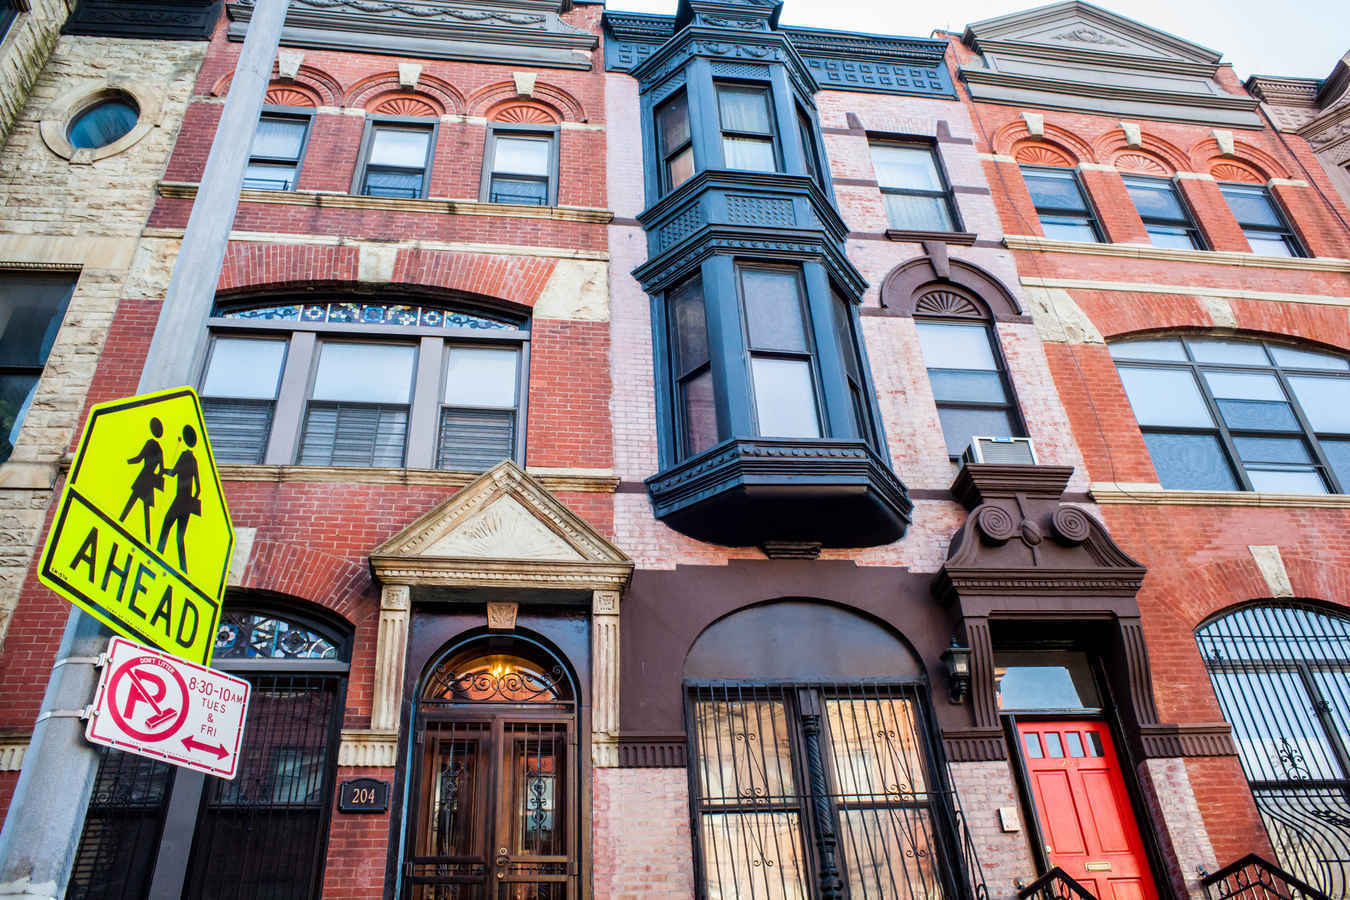 Townhouses in Harlem New York